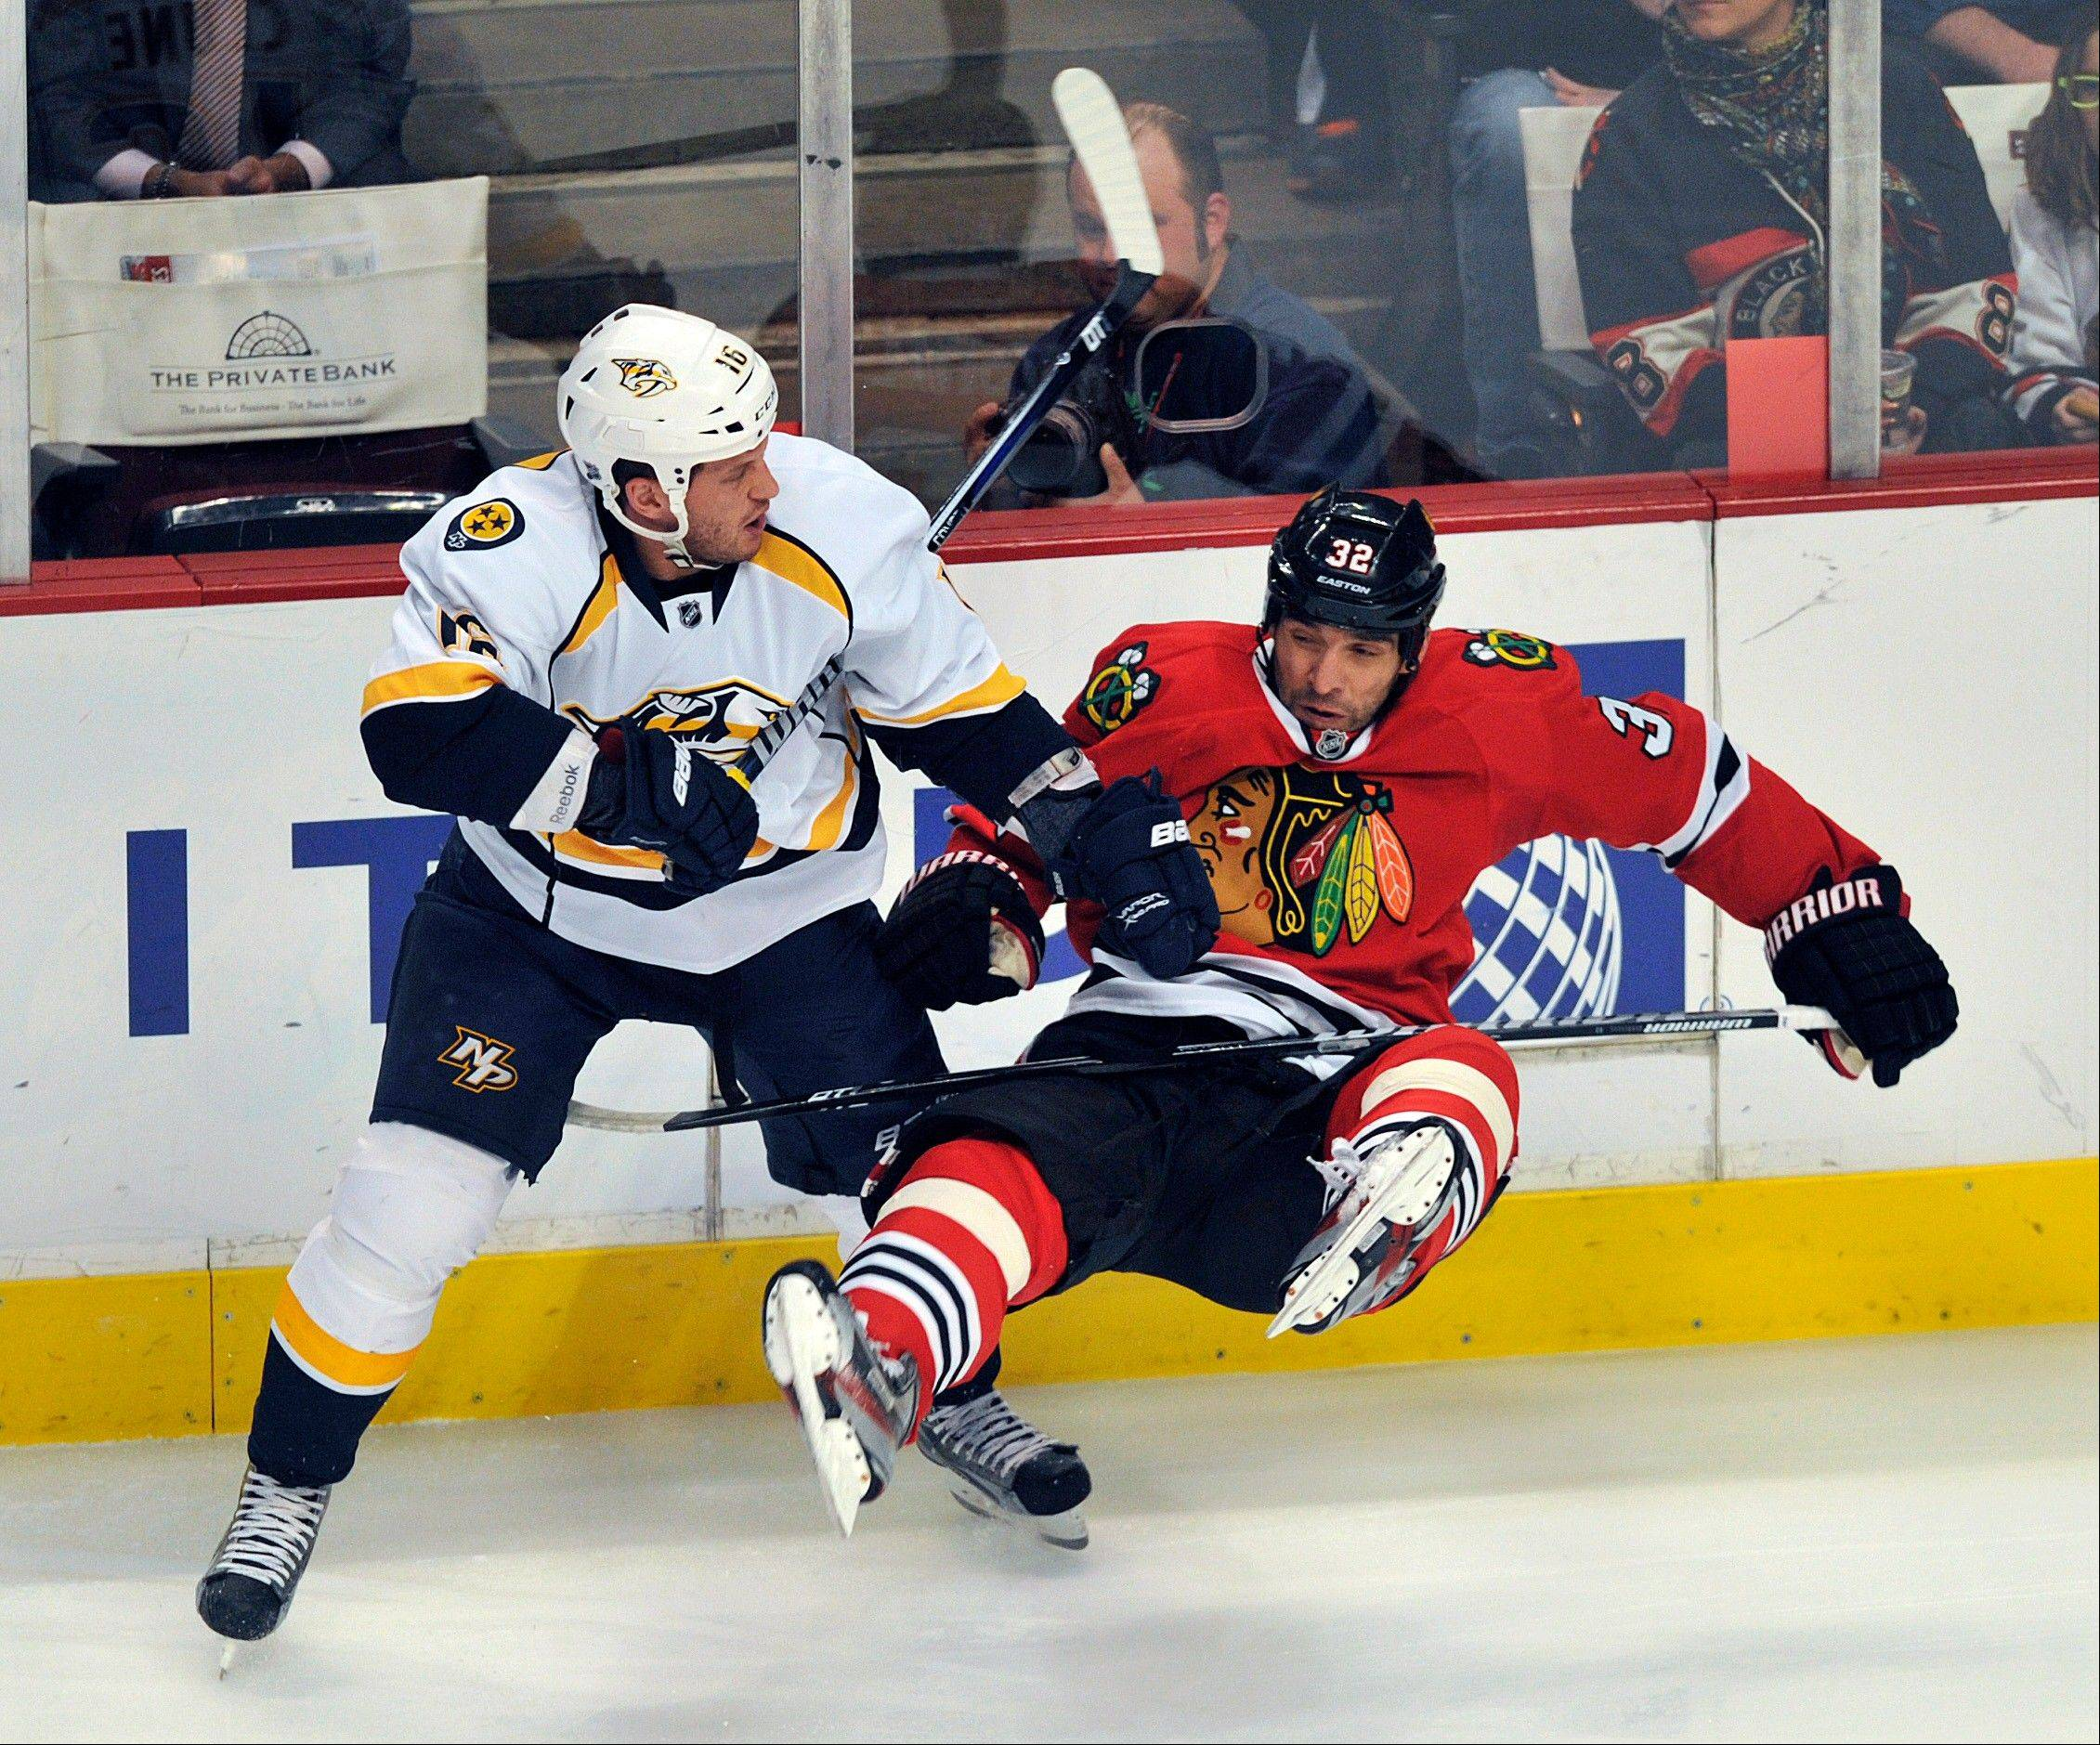 Nashville Predators' Richard Clune left, checks the Chicago Blackhawks' Michal Rozsival during the first period.